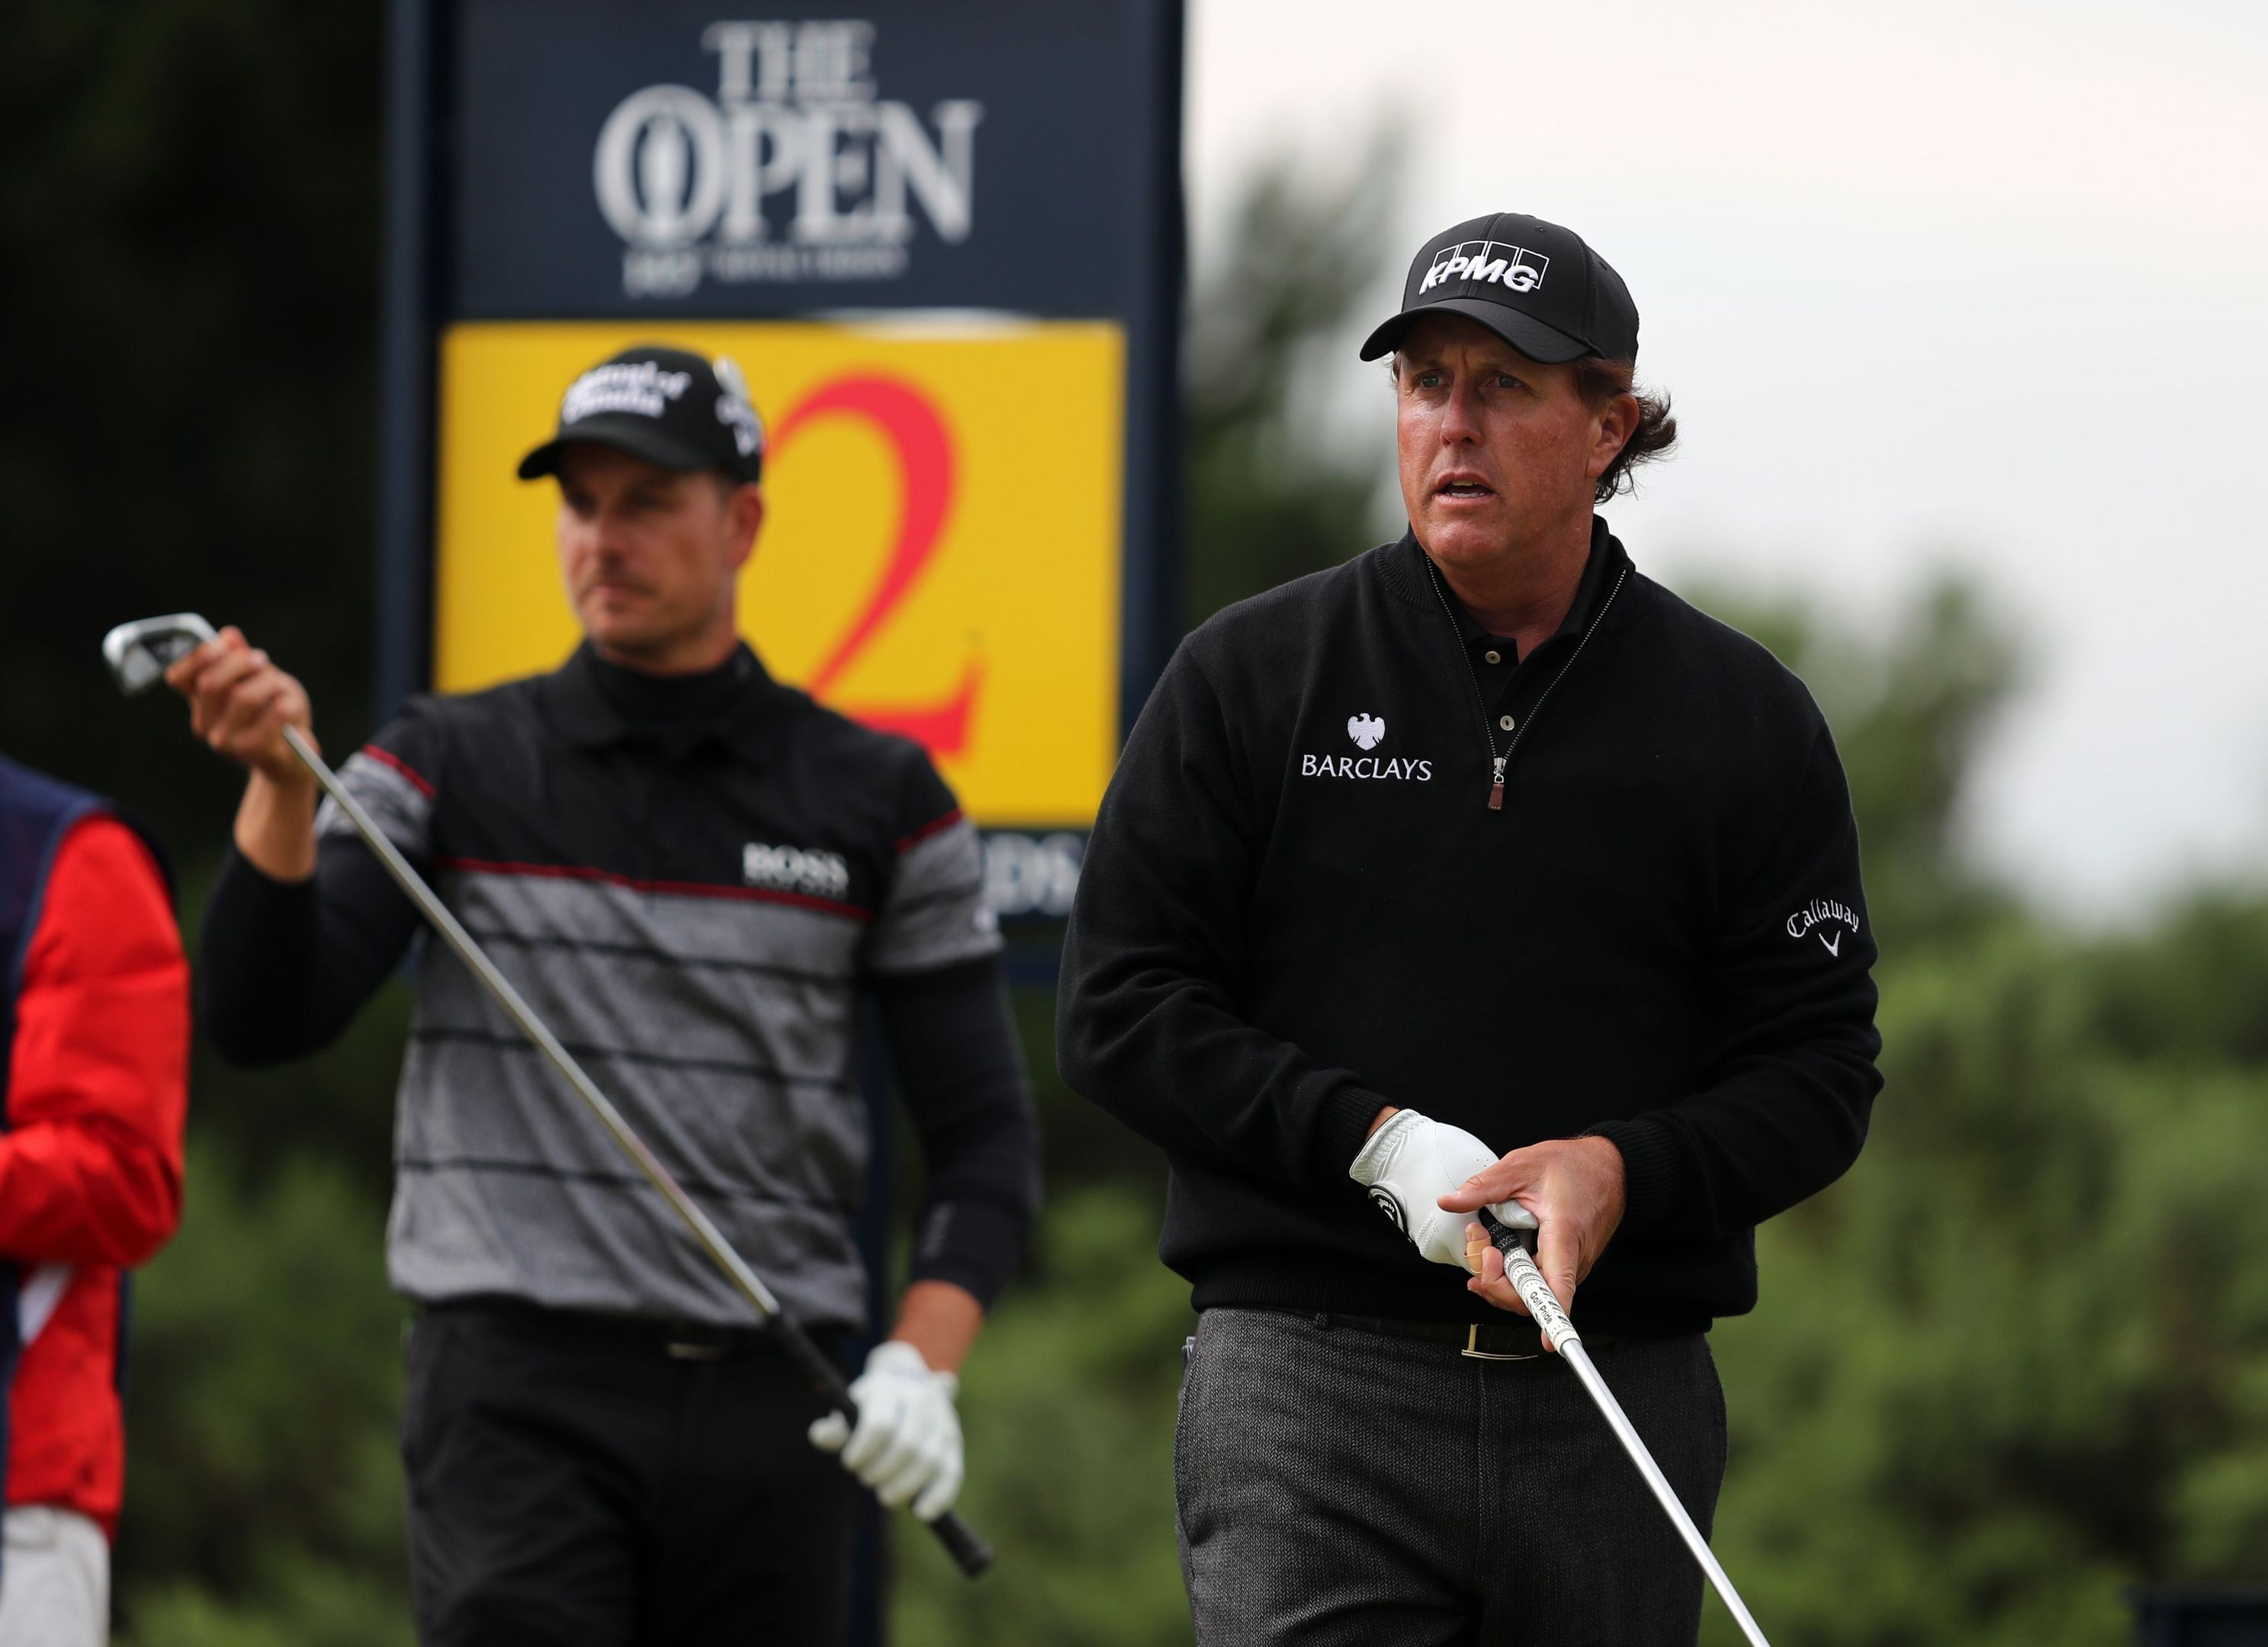 Henrik Stenson and Phil Mickelson during their epic final round duel at Royal Troon.